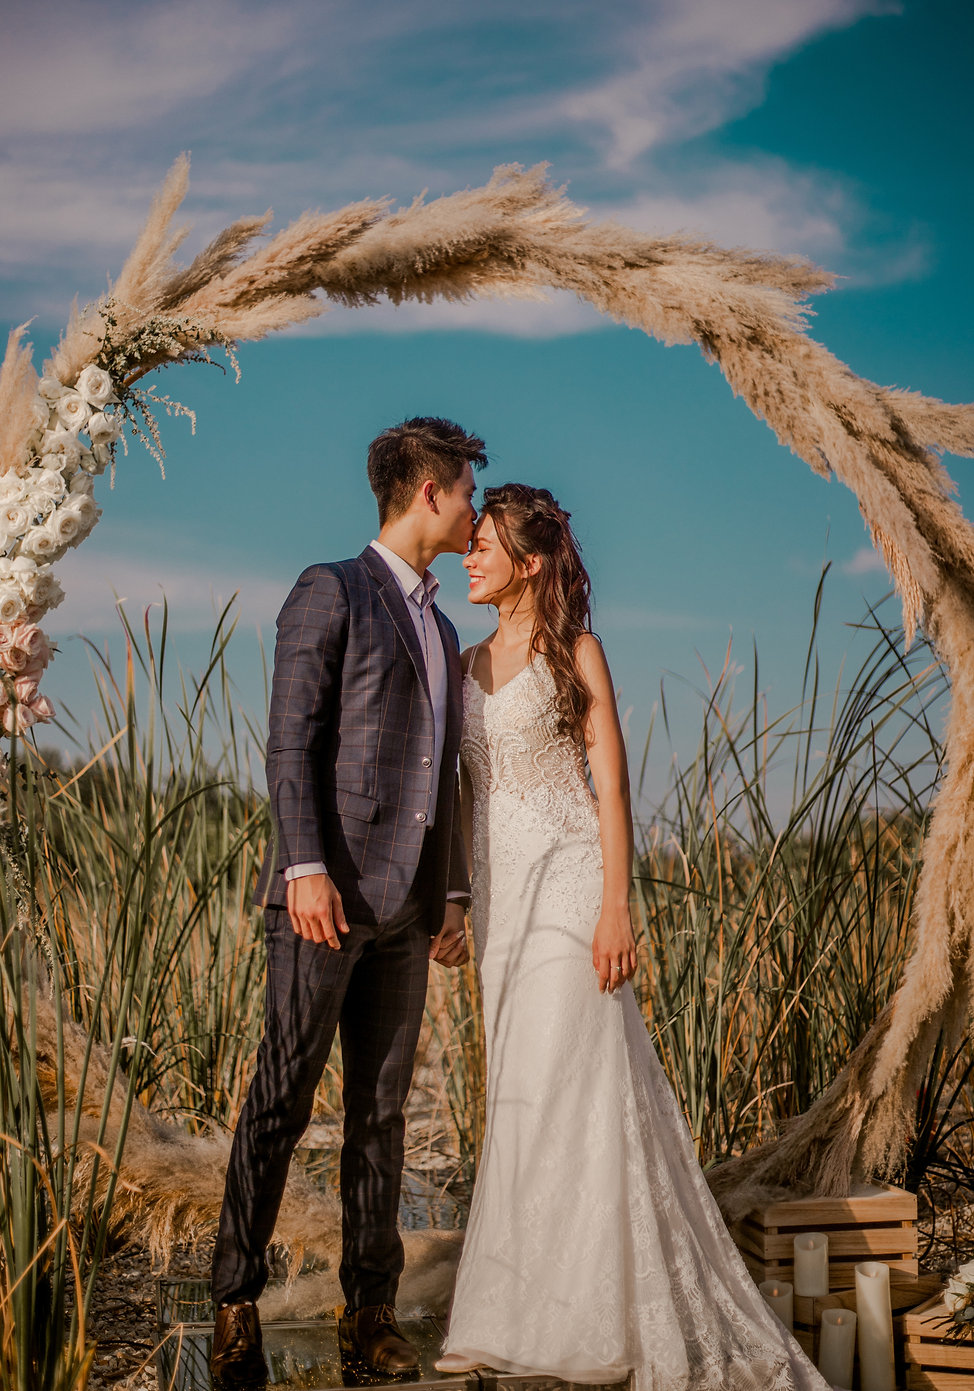 Pampas floral arch wedding photoshoot